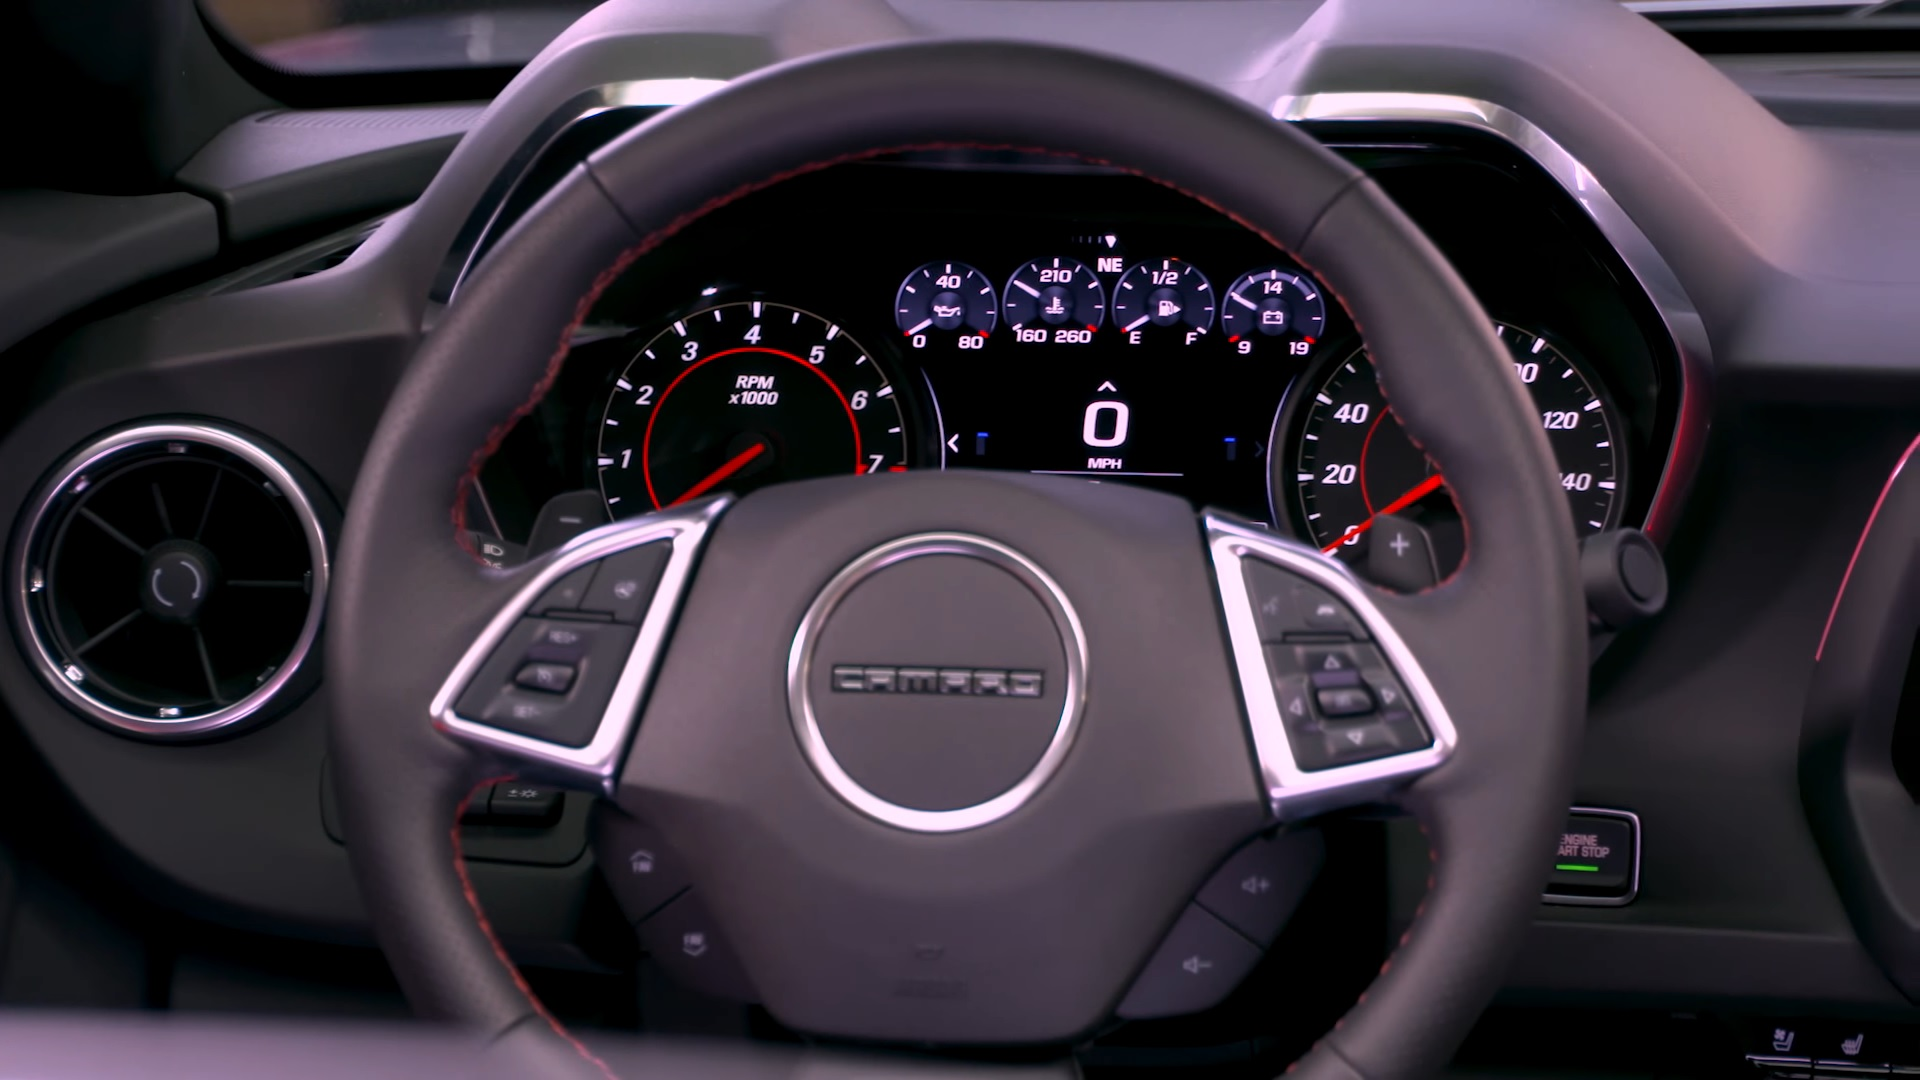 2019 Chevrolet Camaro Ss Coupe Interior Steering Wheel Wallpaper